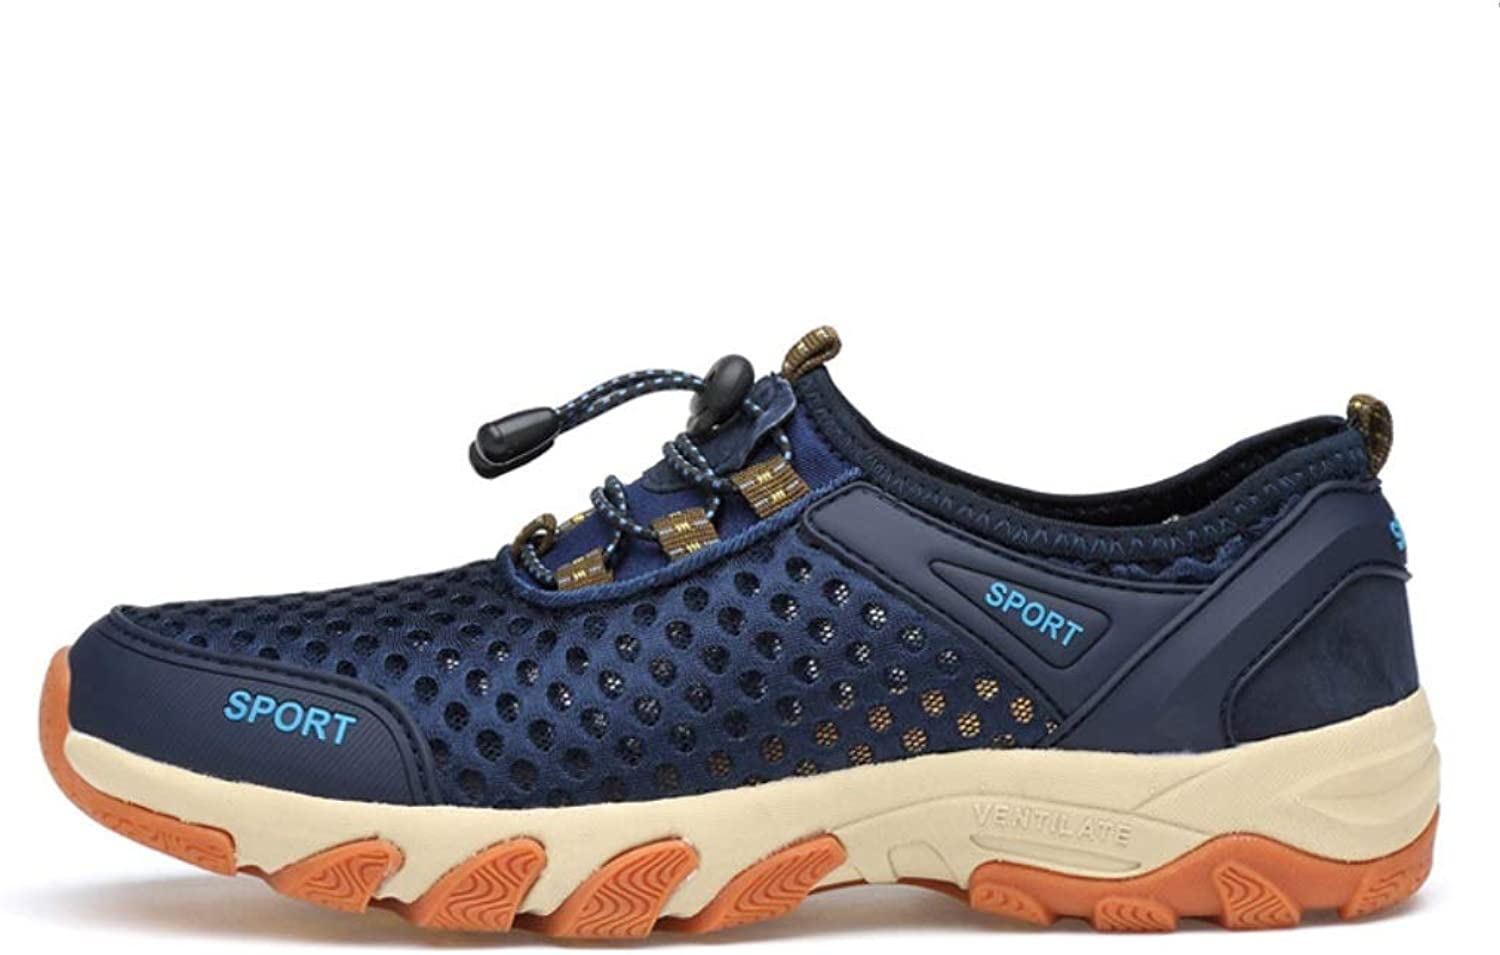 Men's \North Plains Hiking shoes Outdoor Sneakers Hiking shoes Outdoor Hiking shoes